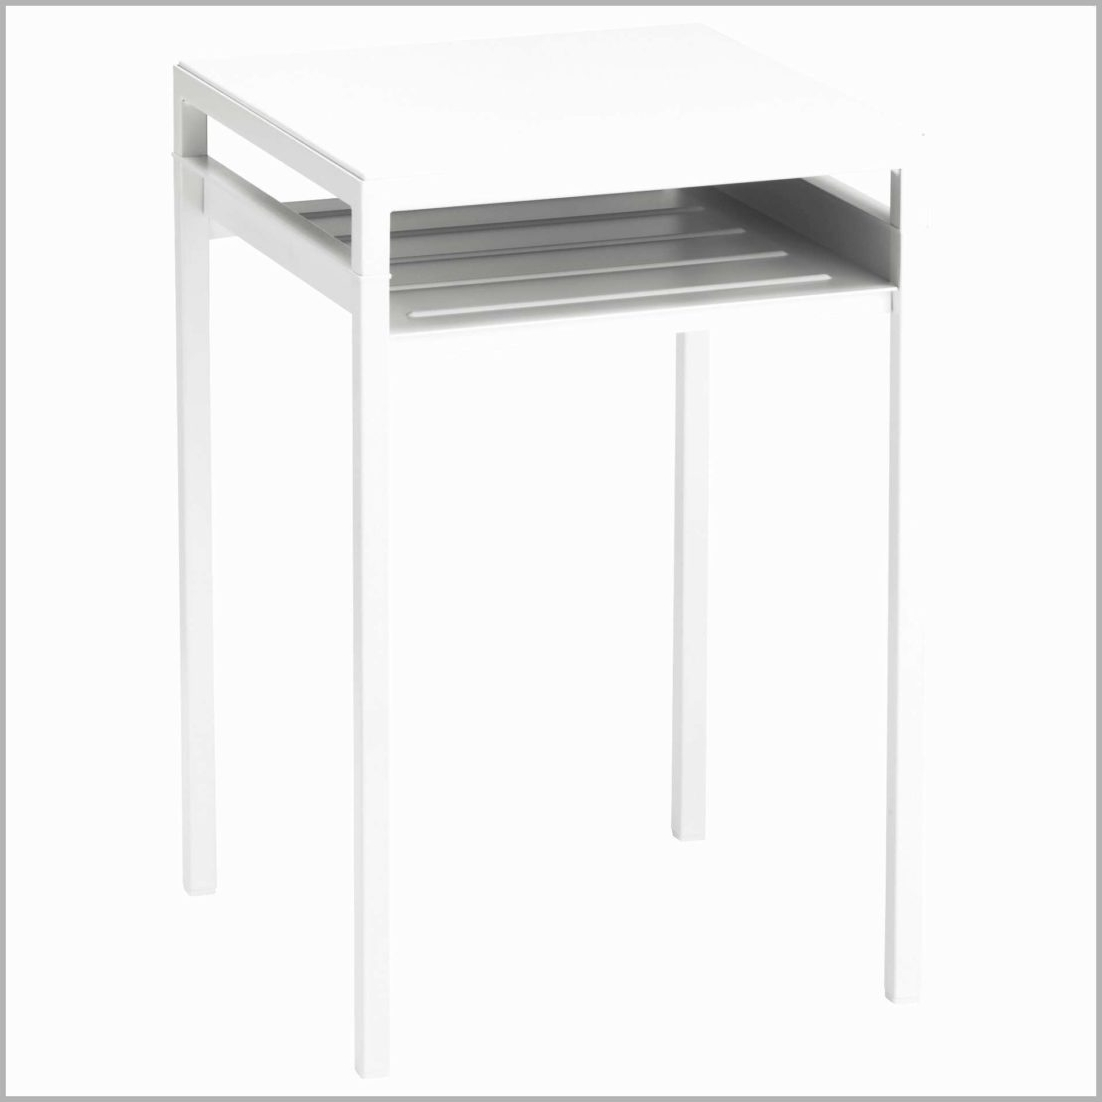 Famous White Dining Table And Bench Small Round For 6 Top Interior Ideas With Small Round White Dining Tables (View 21 of 25)